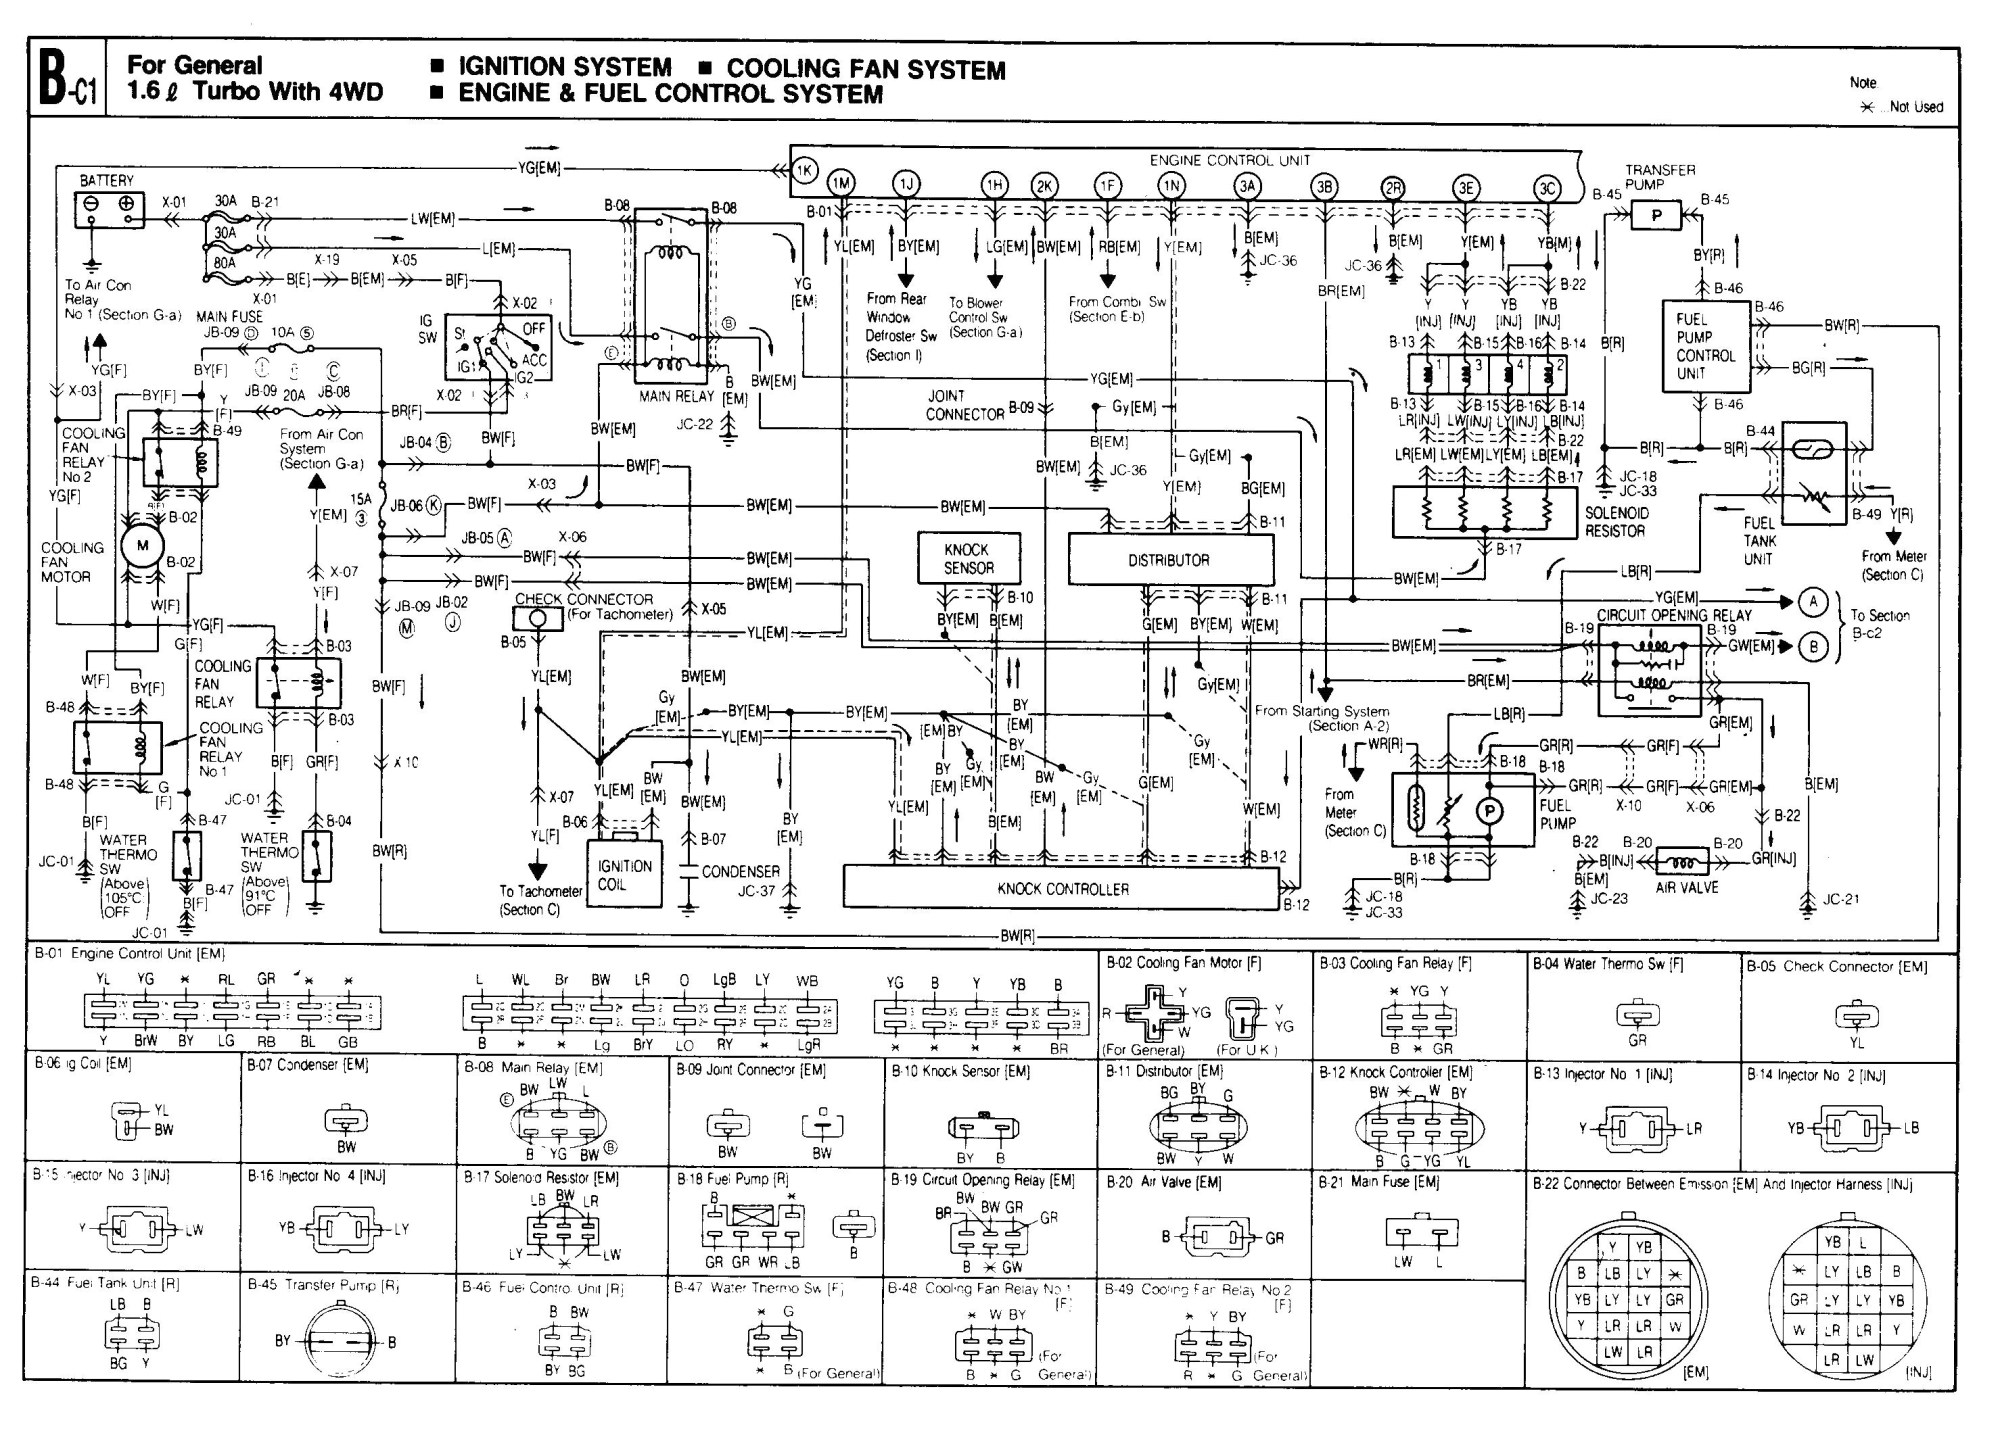 hight resolution of 1996 mazda mpv wiring diagram car wiring diagrams explained u2022 rh justinmyers co 2003 mazda mpv